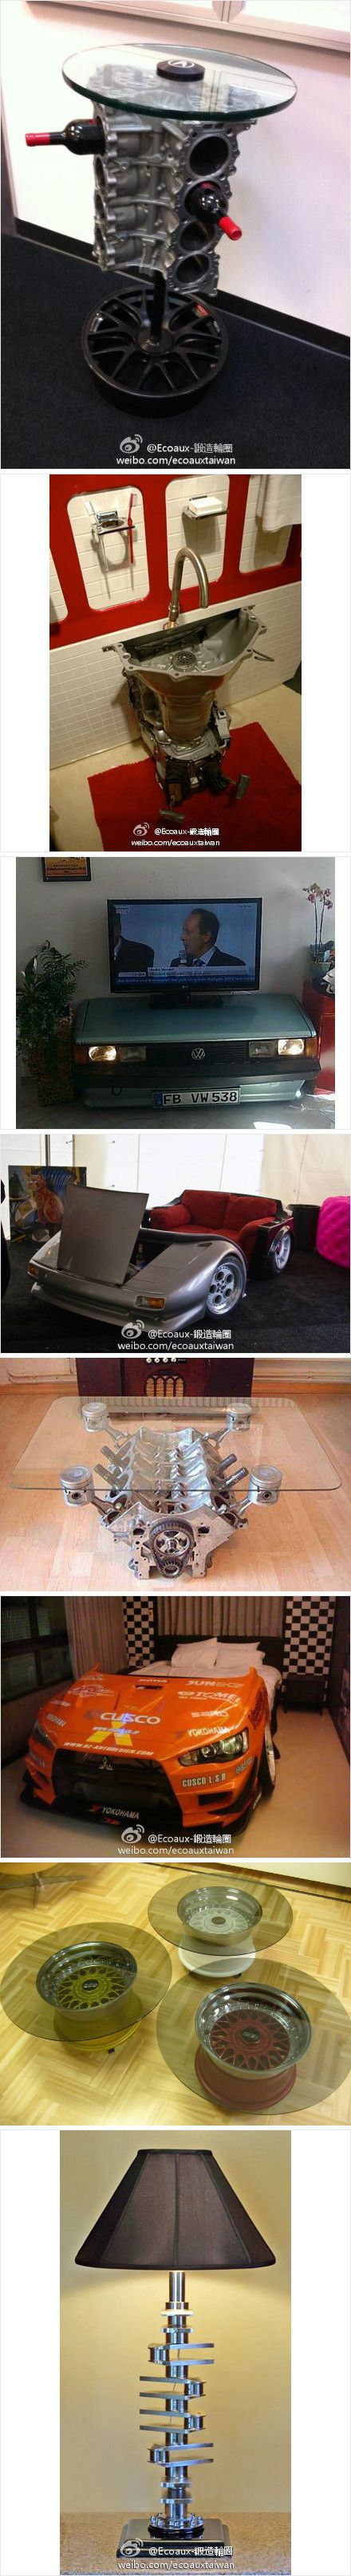 interesting new ways to use old car parts http://www.duitang.com ...